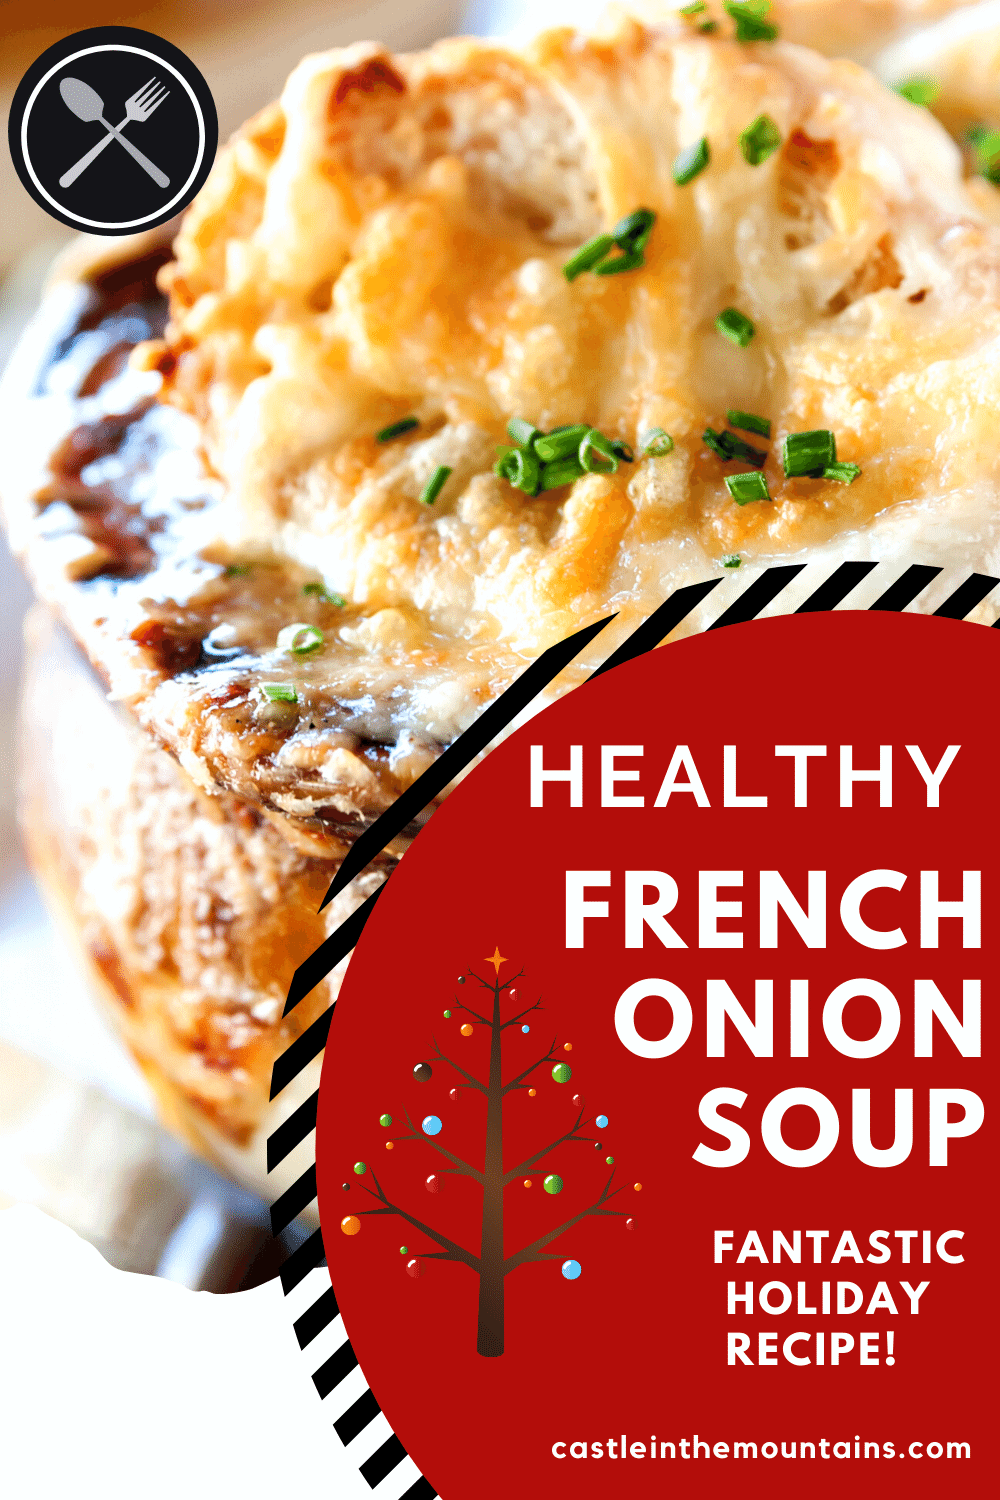 Healthy French Onion Soup - How to get the classic taste with fewer carbs.